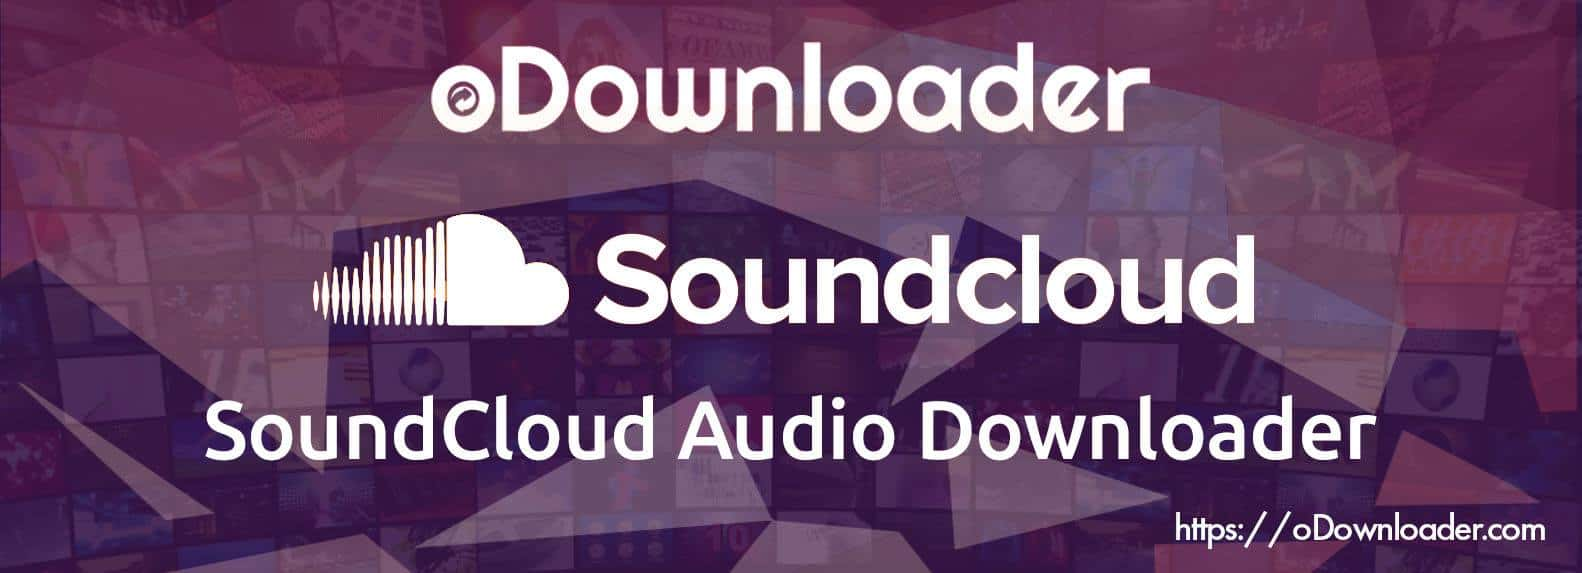 Soundcloud audio downloader